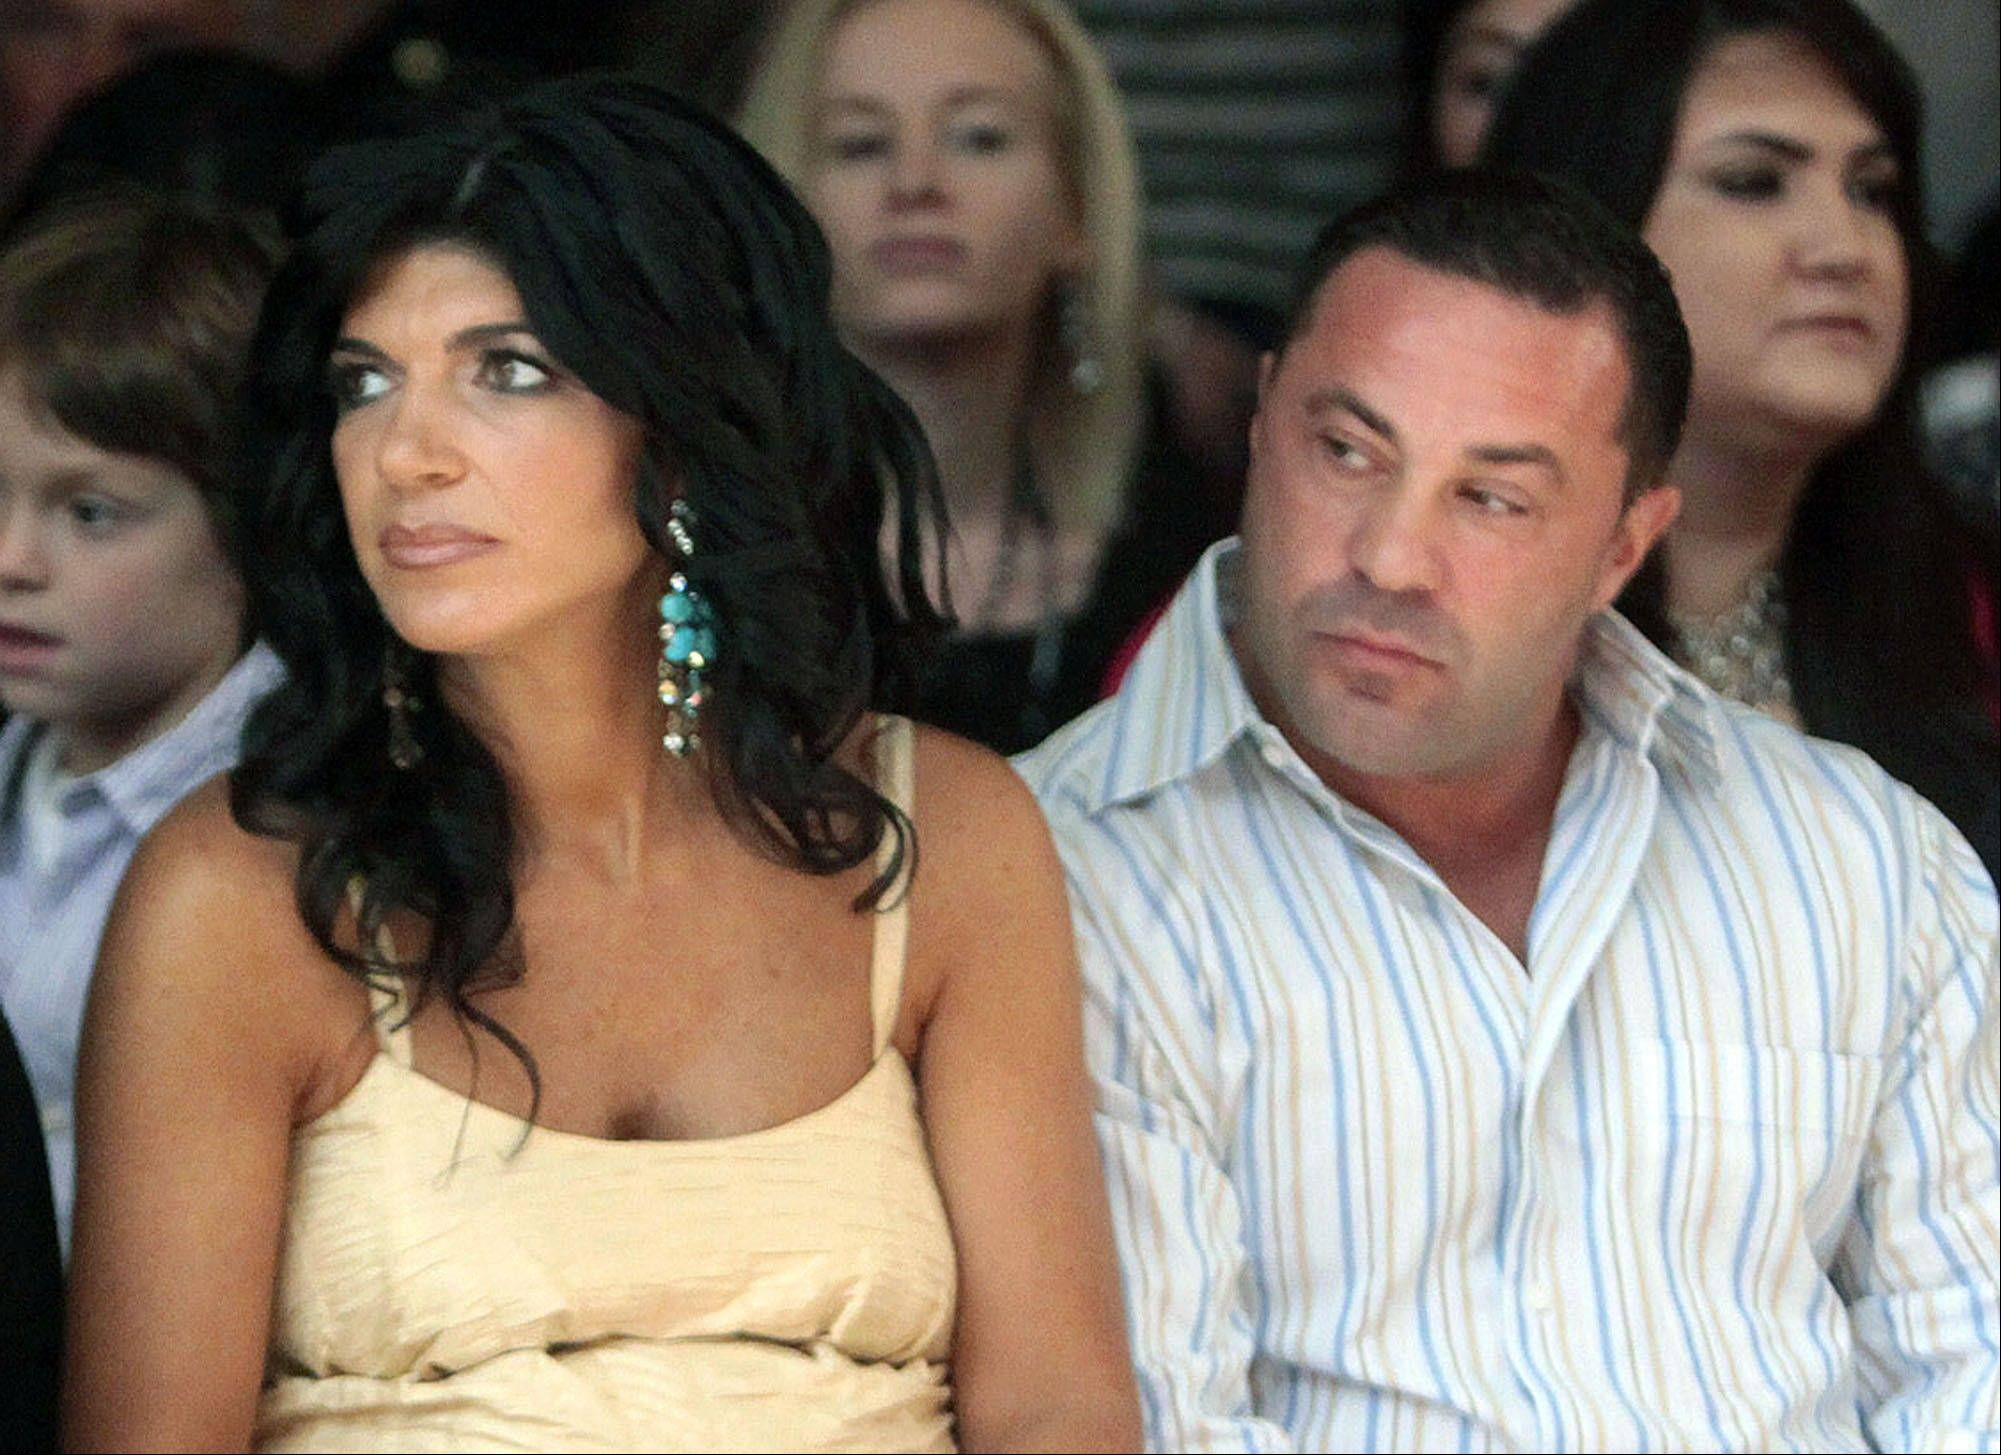 This Sept. 13, 2009 file photo originally released by Oral-B Pulsonic shows �Real Housewives of New Jersey� stars, Teresa Giudice, left, and her husband Joe Giudice at the Caravan Fashion Show sponsored by Oral-B Pulsonic in New York. Teresa and Giuseppe �Joe� Giudice were charged in a 39-count indictment handed up Monday in Newark, N.J. The two are accused of submitting fraudulent mortgage and other loan applications from 2001 through 2008, a year before their show debuted on Bravo. Prosecutors say they made false claims about their employment status and salaries.